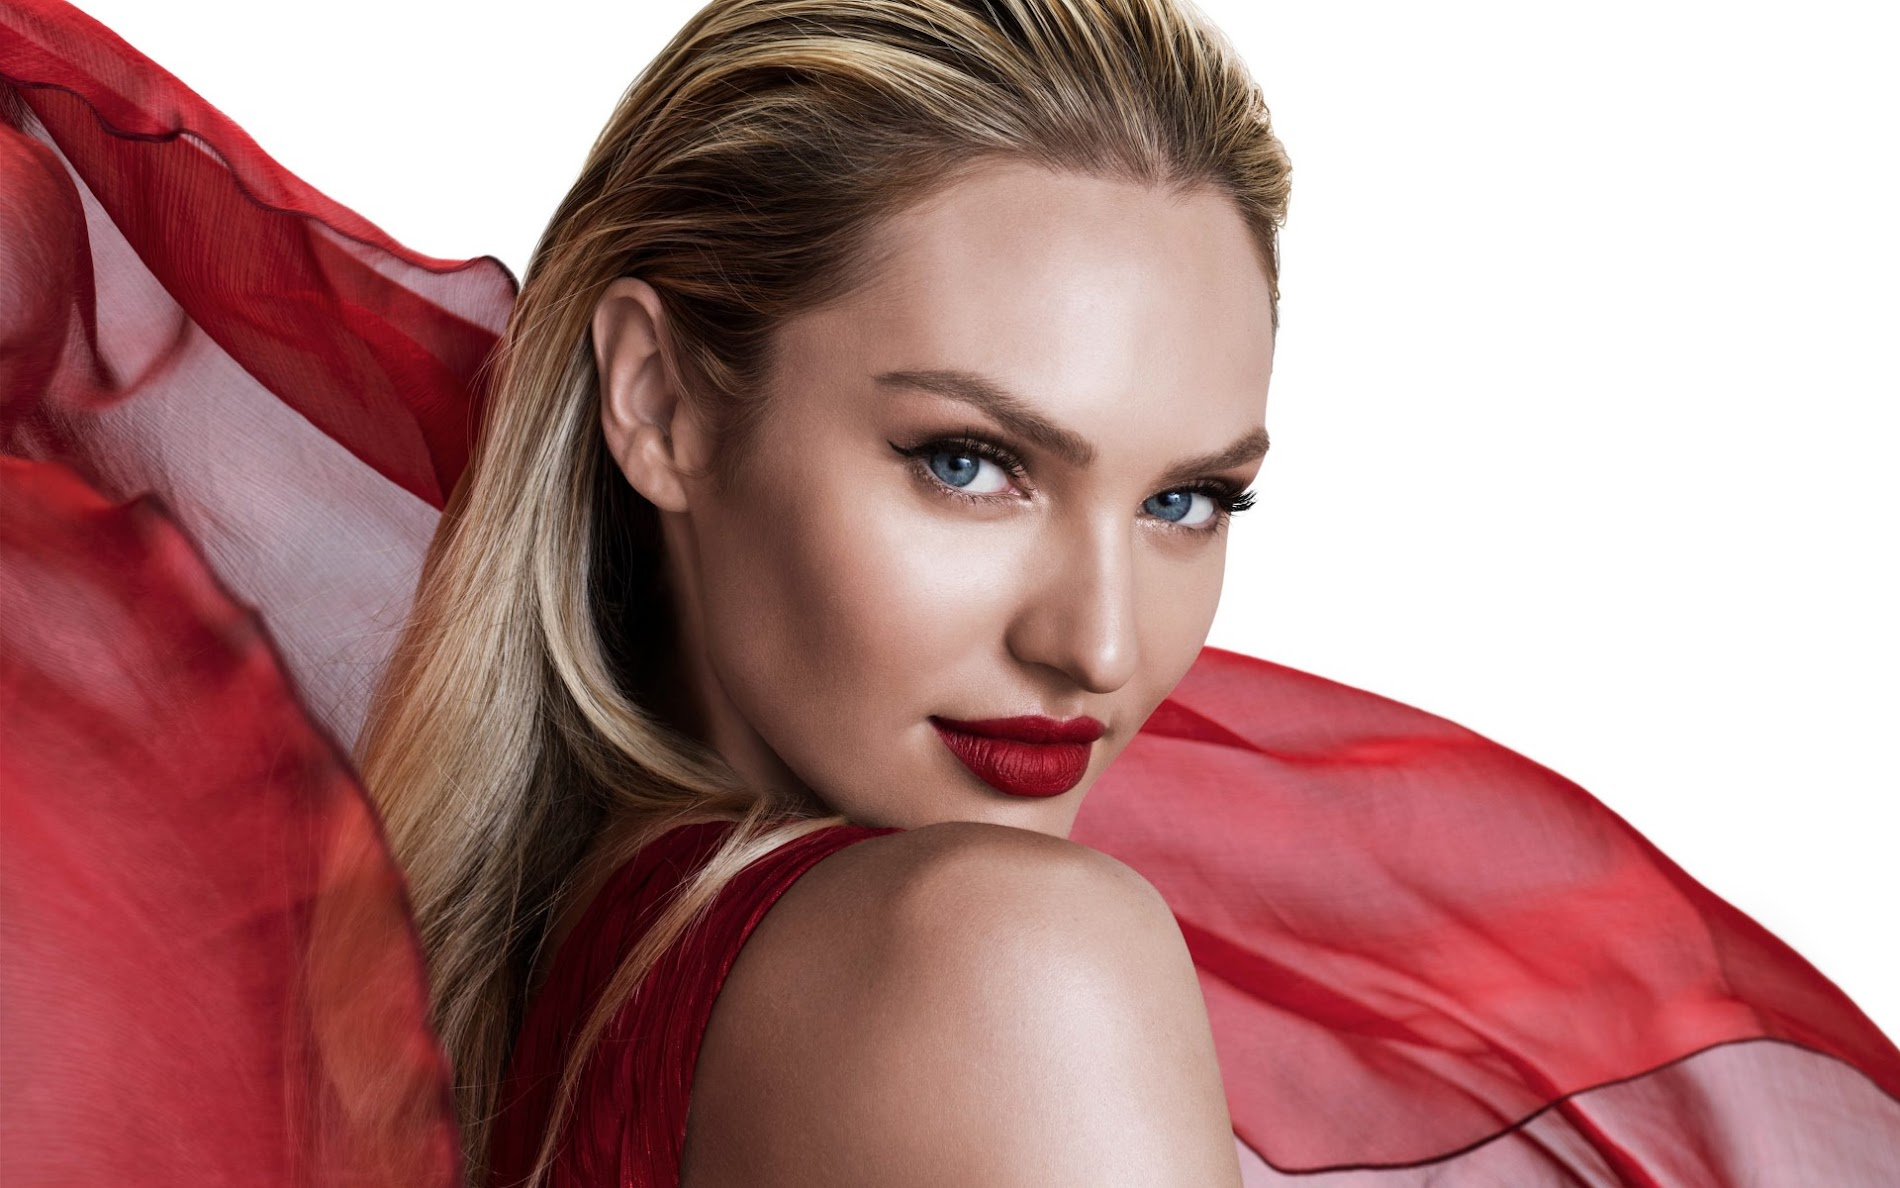 Candice Swanepoel 2018 Wallpaper